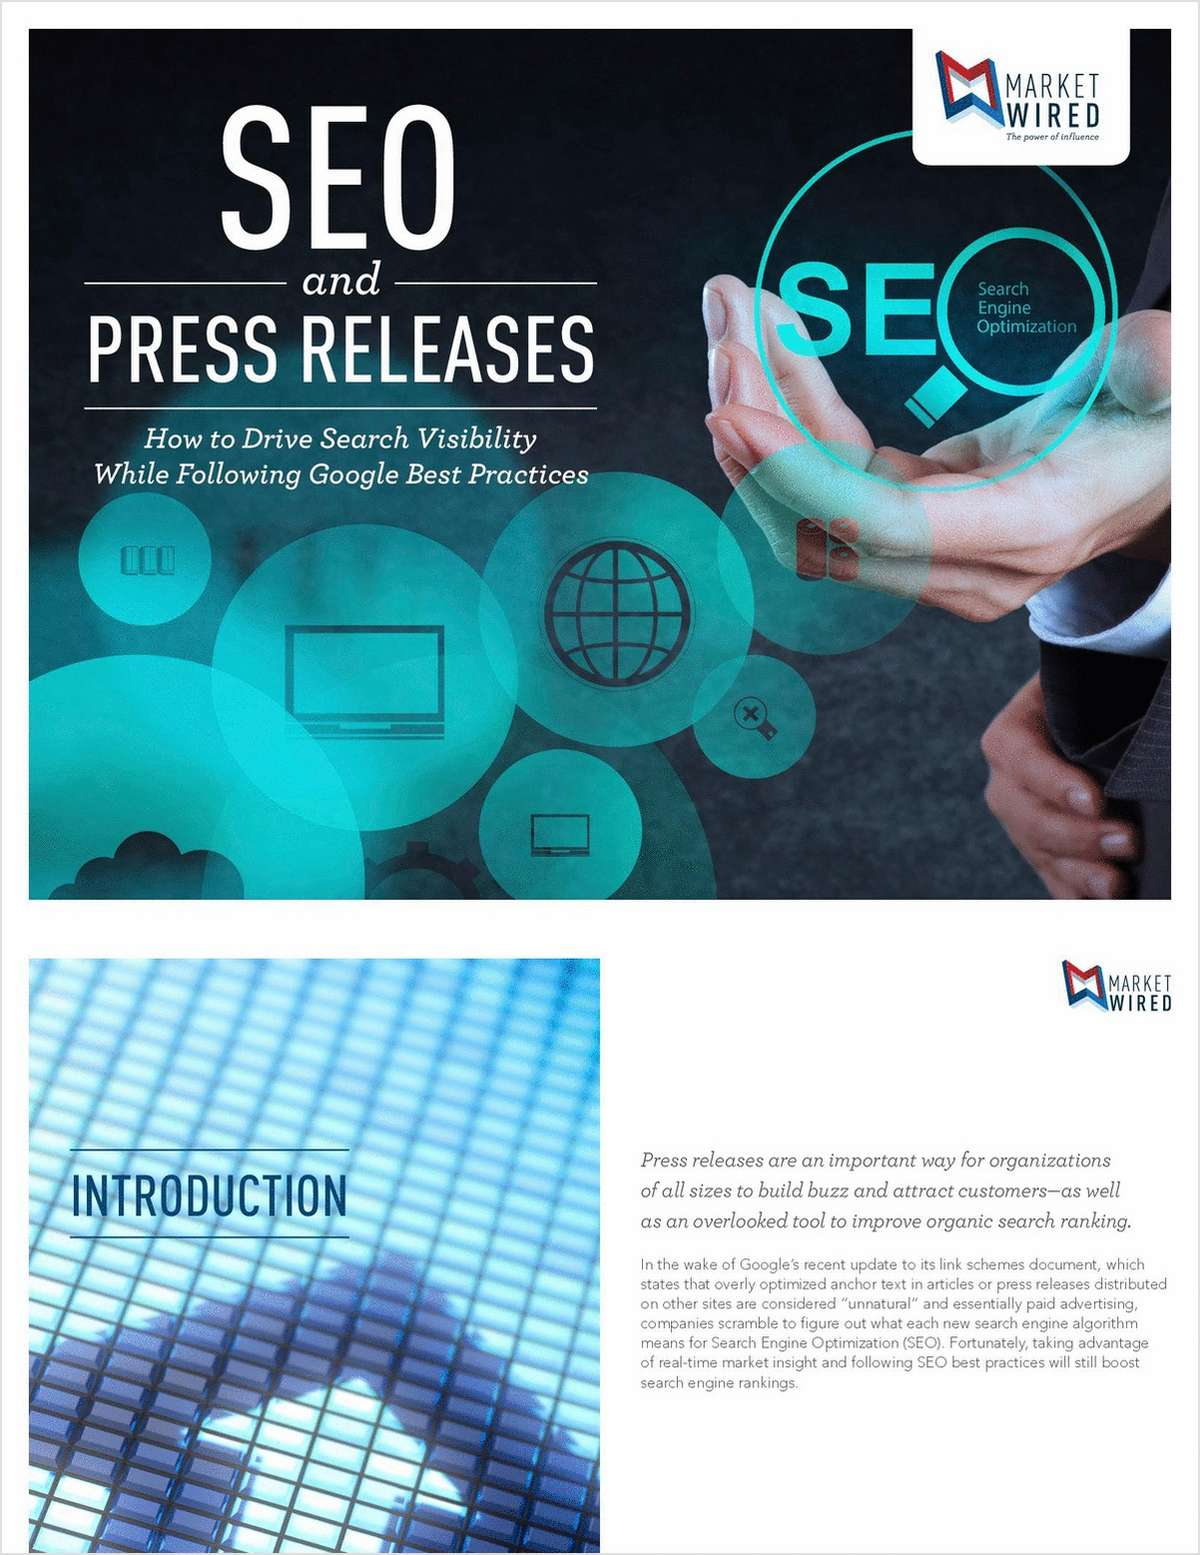 8 Tips to Create Search-Friendly Press Releases